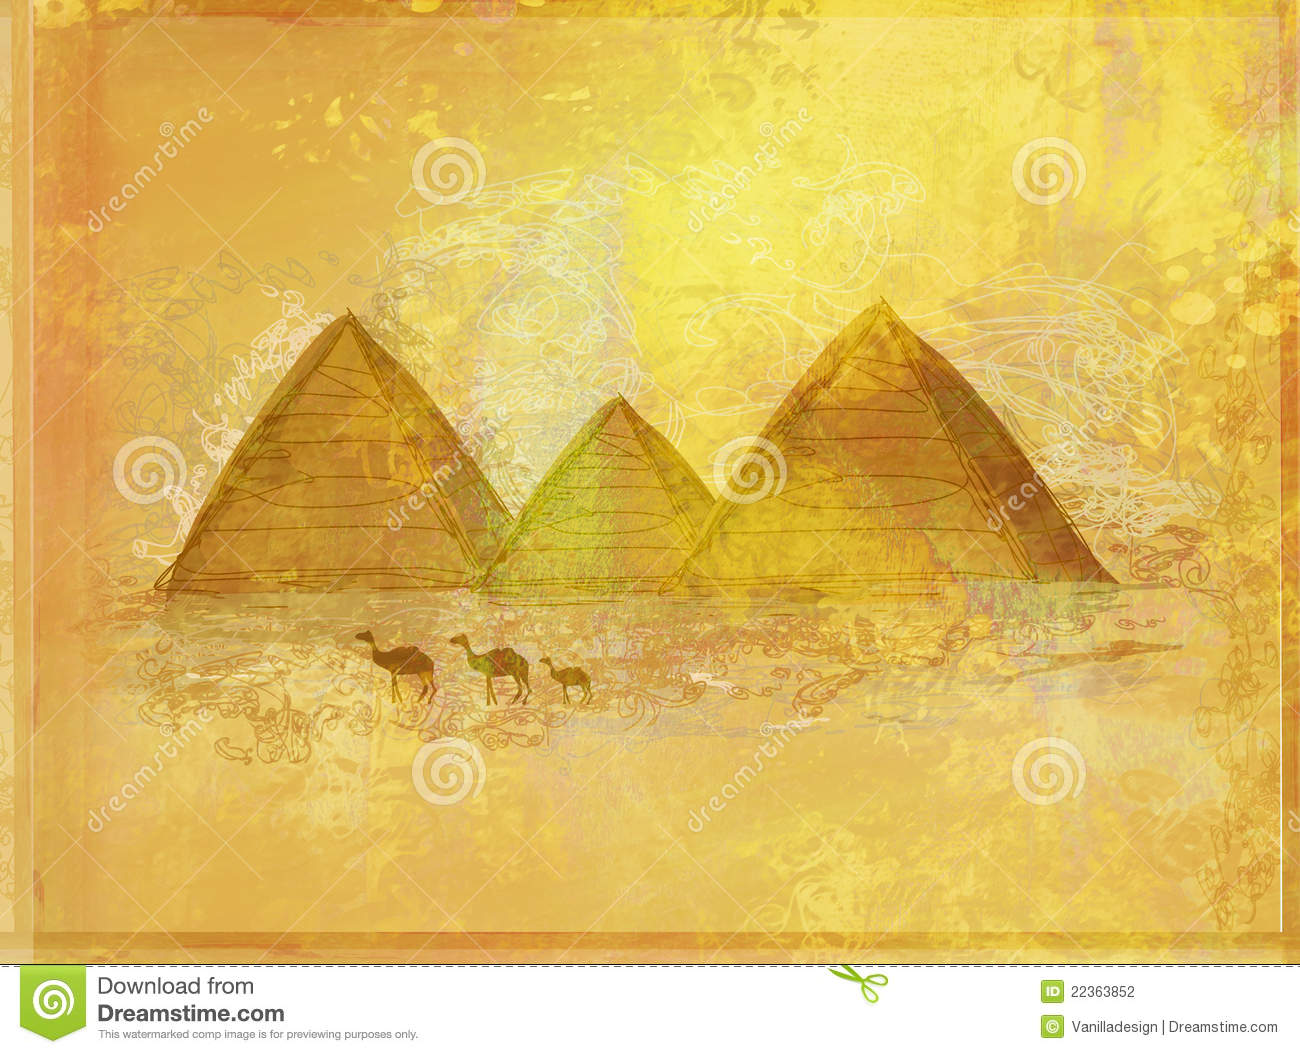 egypt pyramids research papers This research paper will focus on the old kingdom in egyptian history, and will go into detail about the pyramids and how they were built and the burial practices of the time.